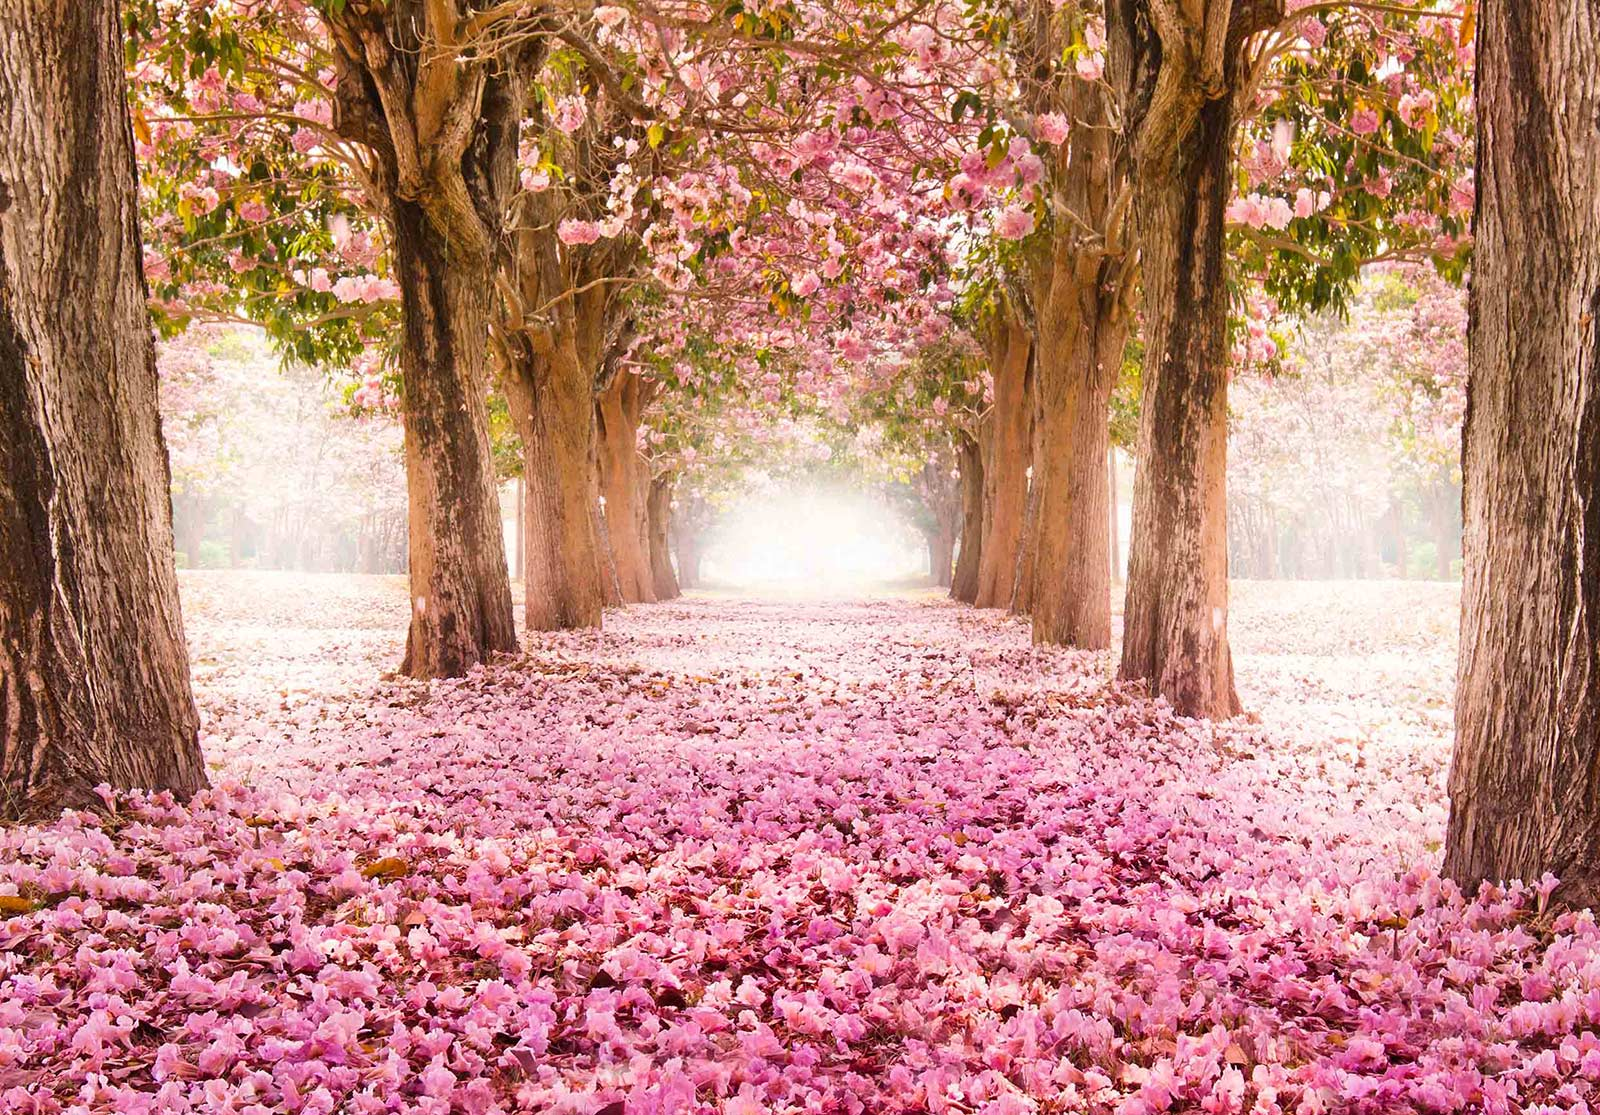 A pathway covered in pink flowers lined by several trees